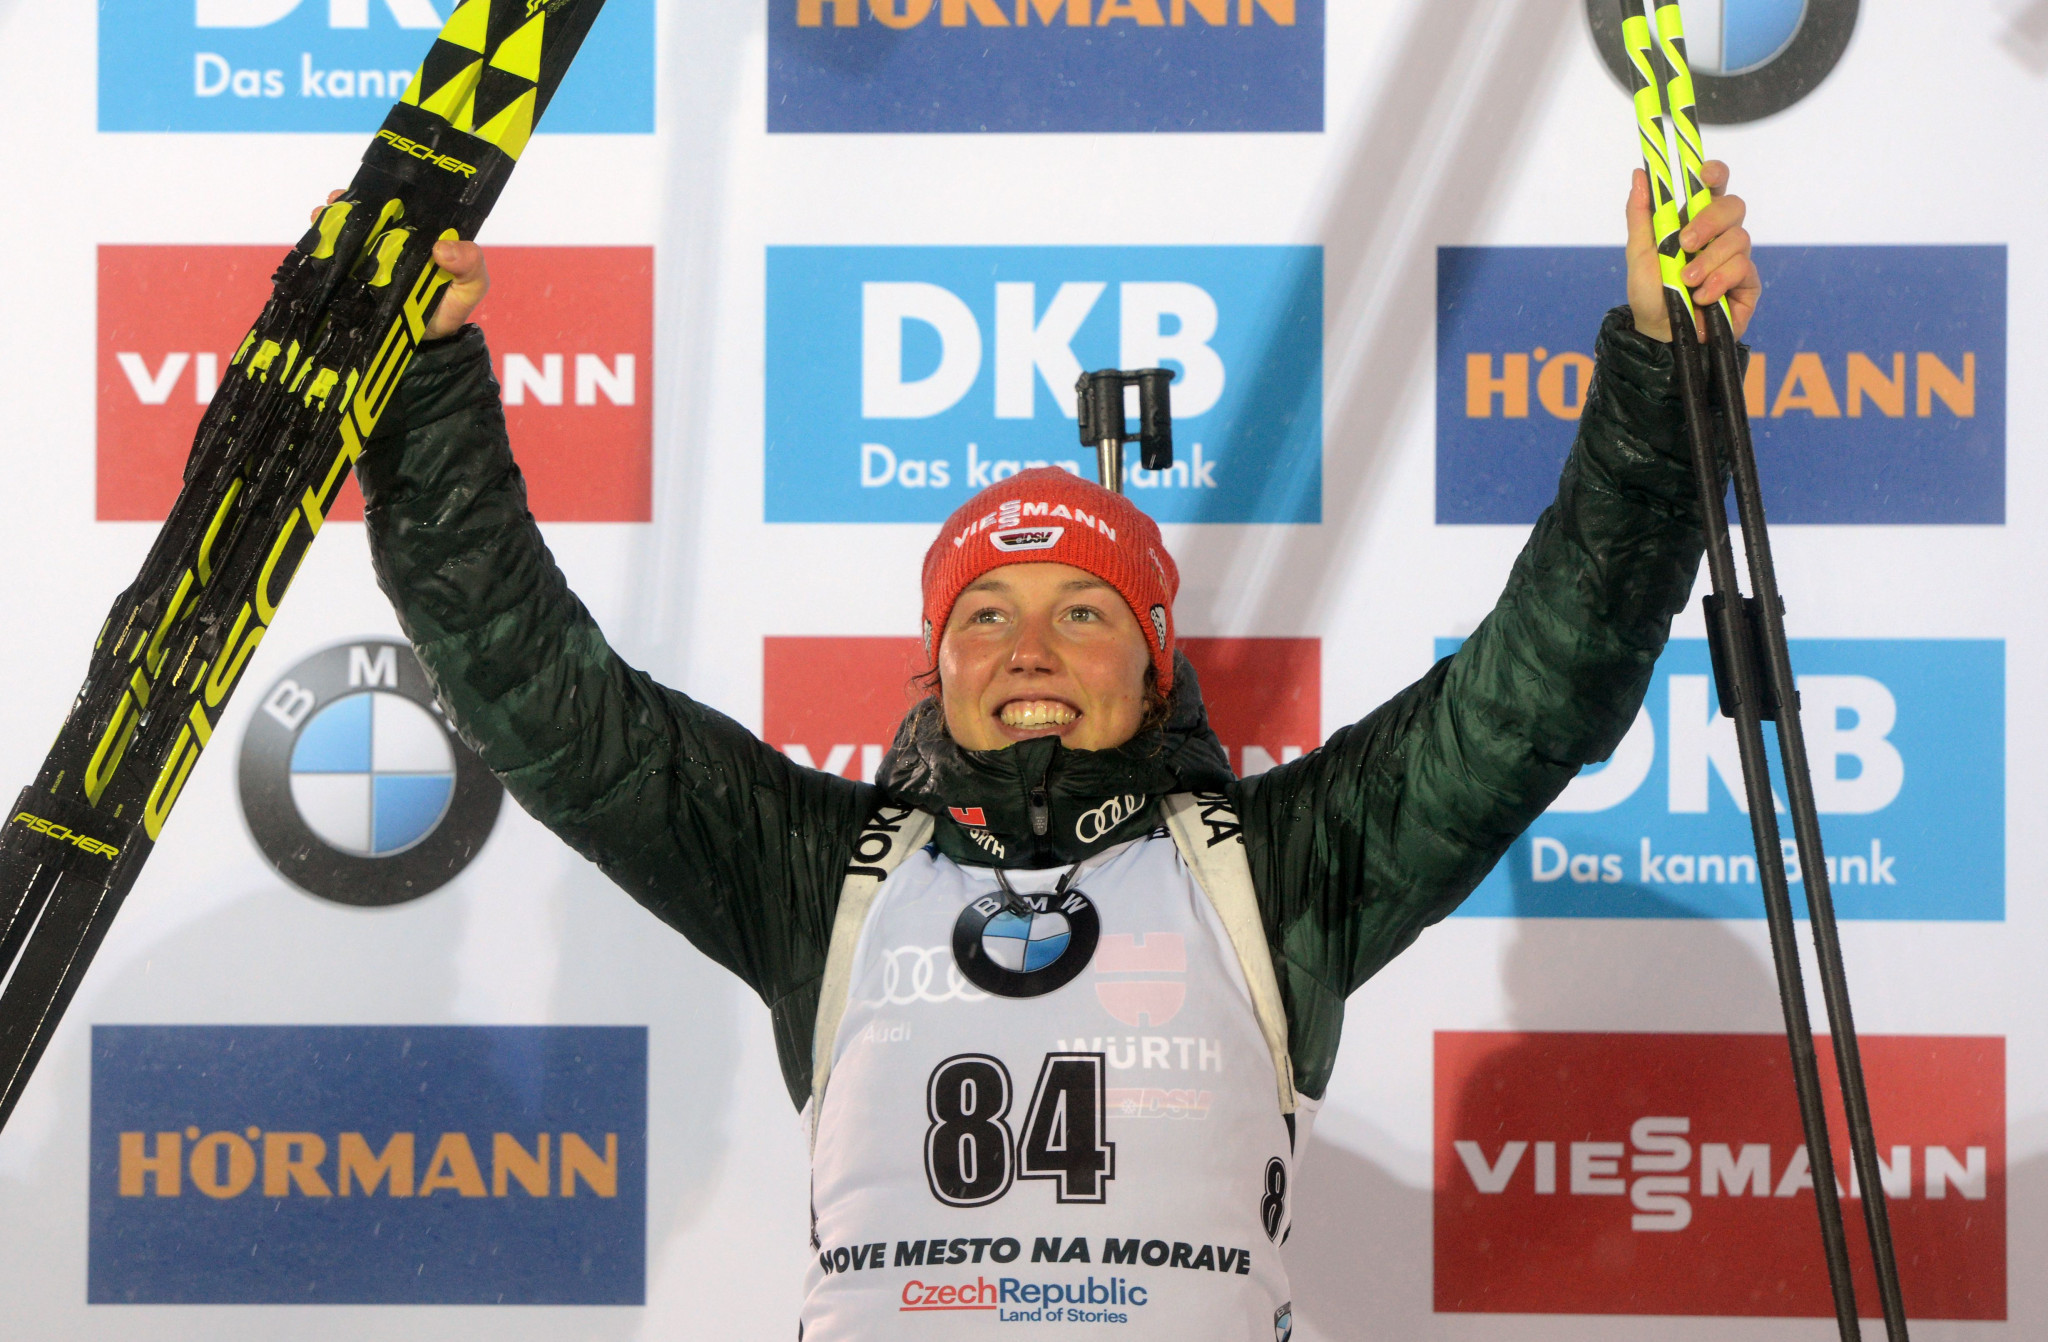 Oberhof set for next stage of IBU World Cup